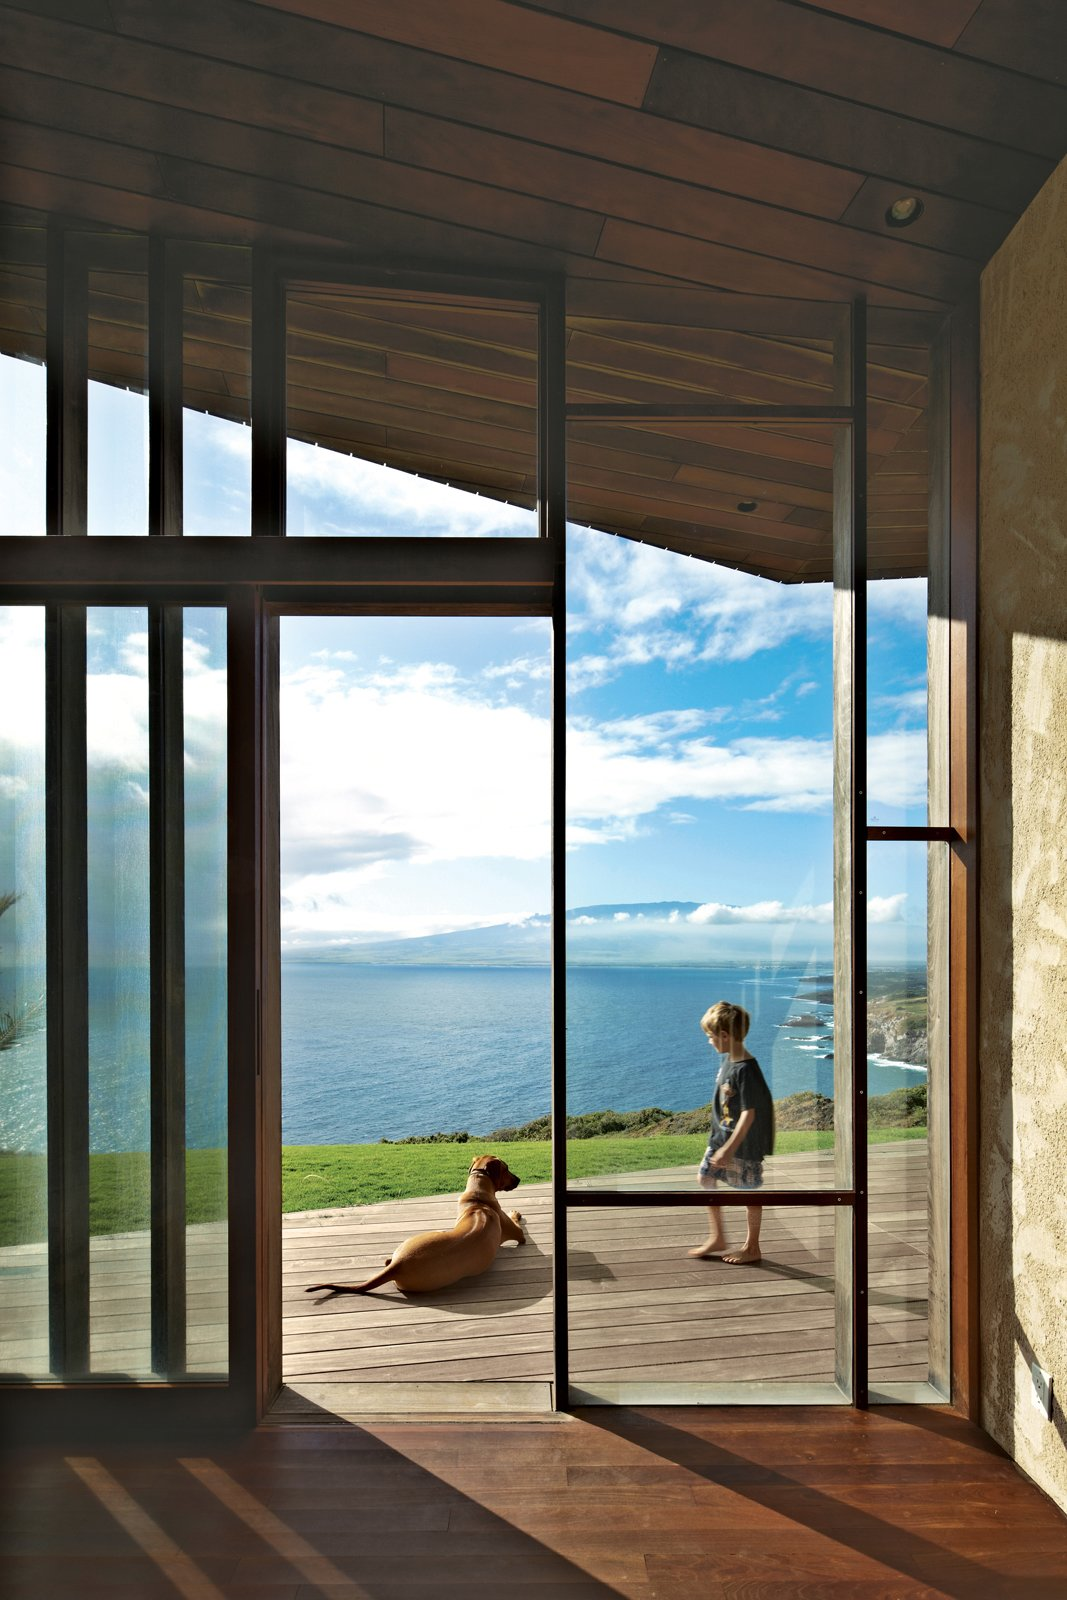 #Dogs #ModernHomes #Outdoor #View #WaterFfront  Dogs Who Love Modern Design